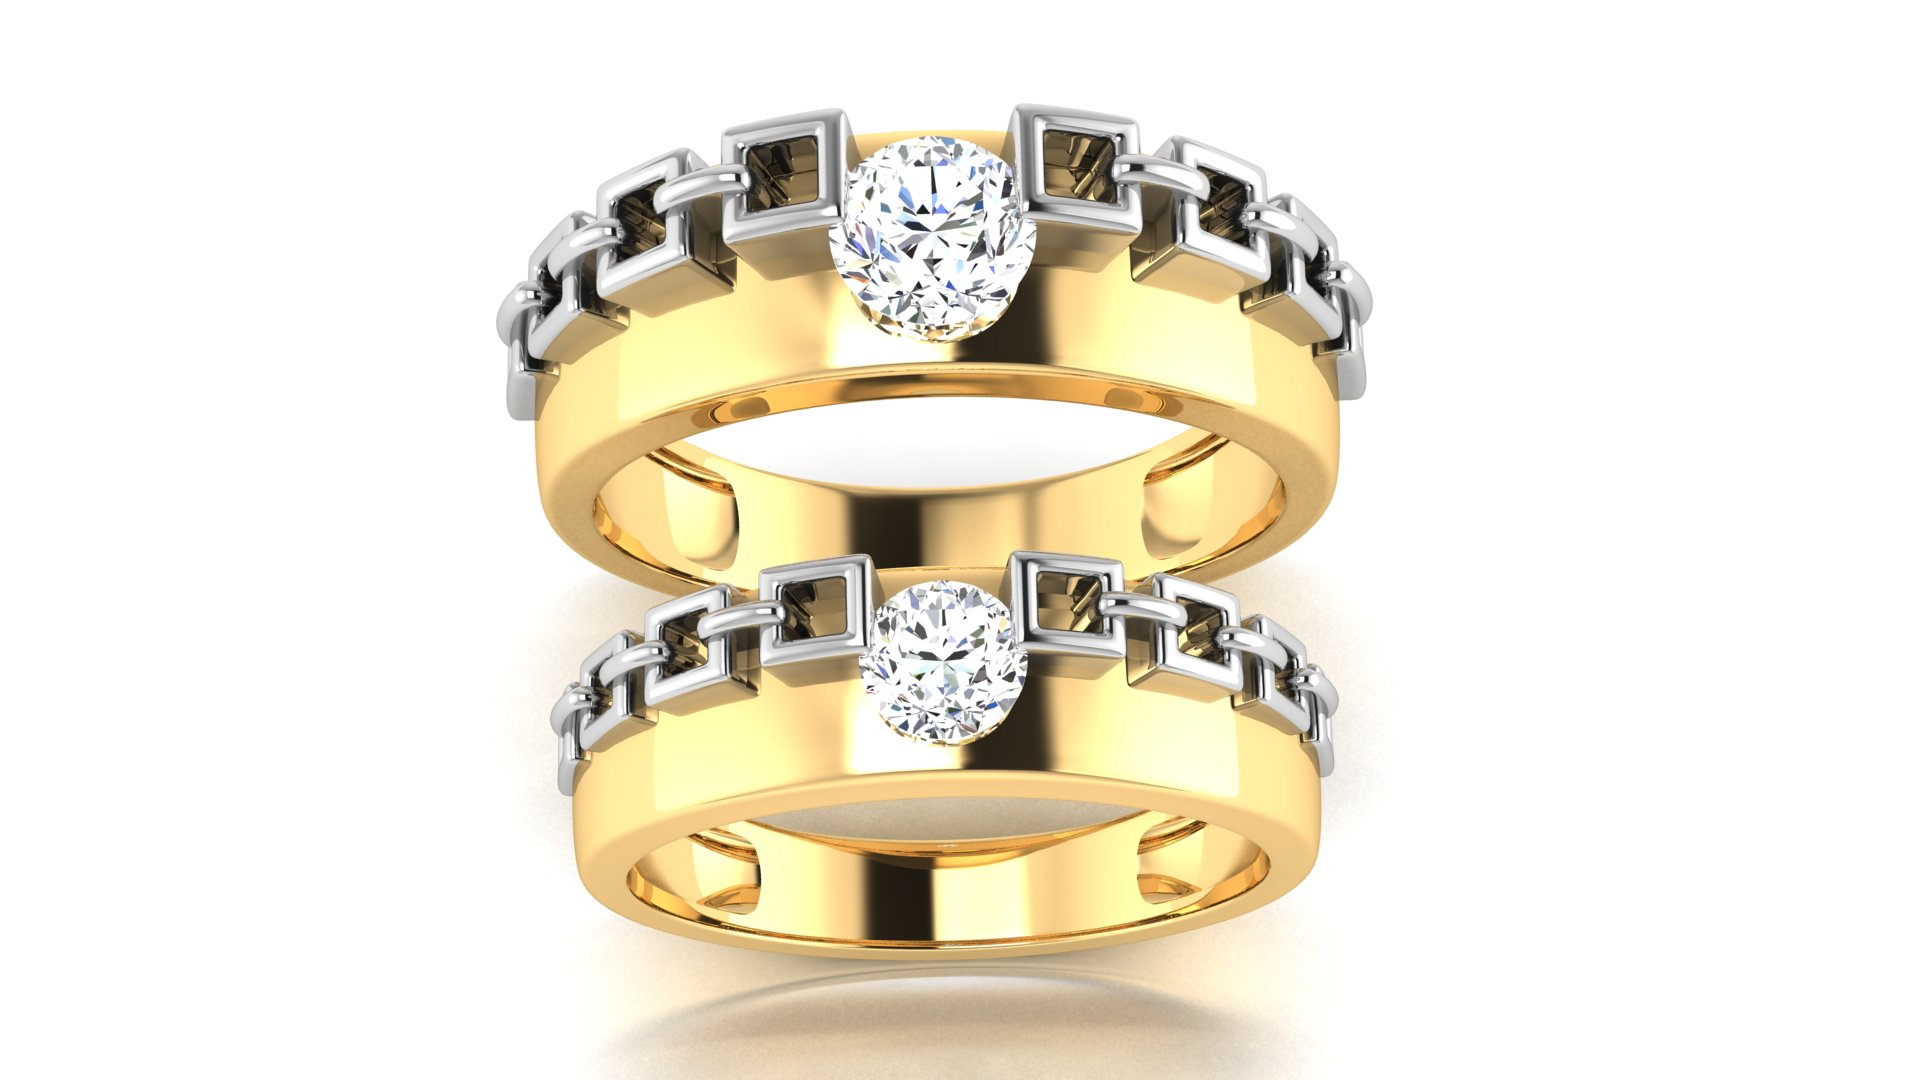 18 & 20 Carat Gold Couple Ring Online